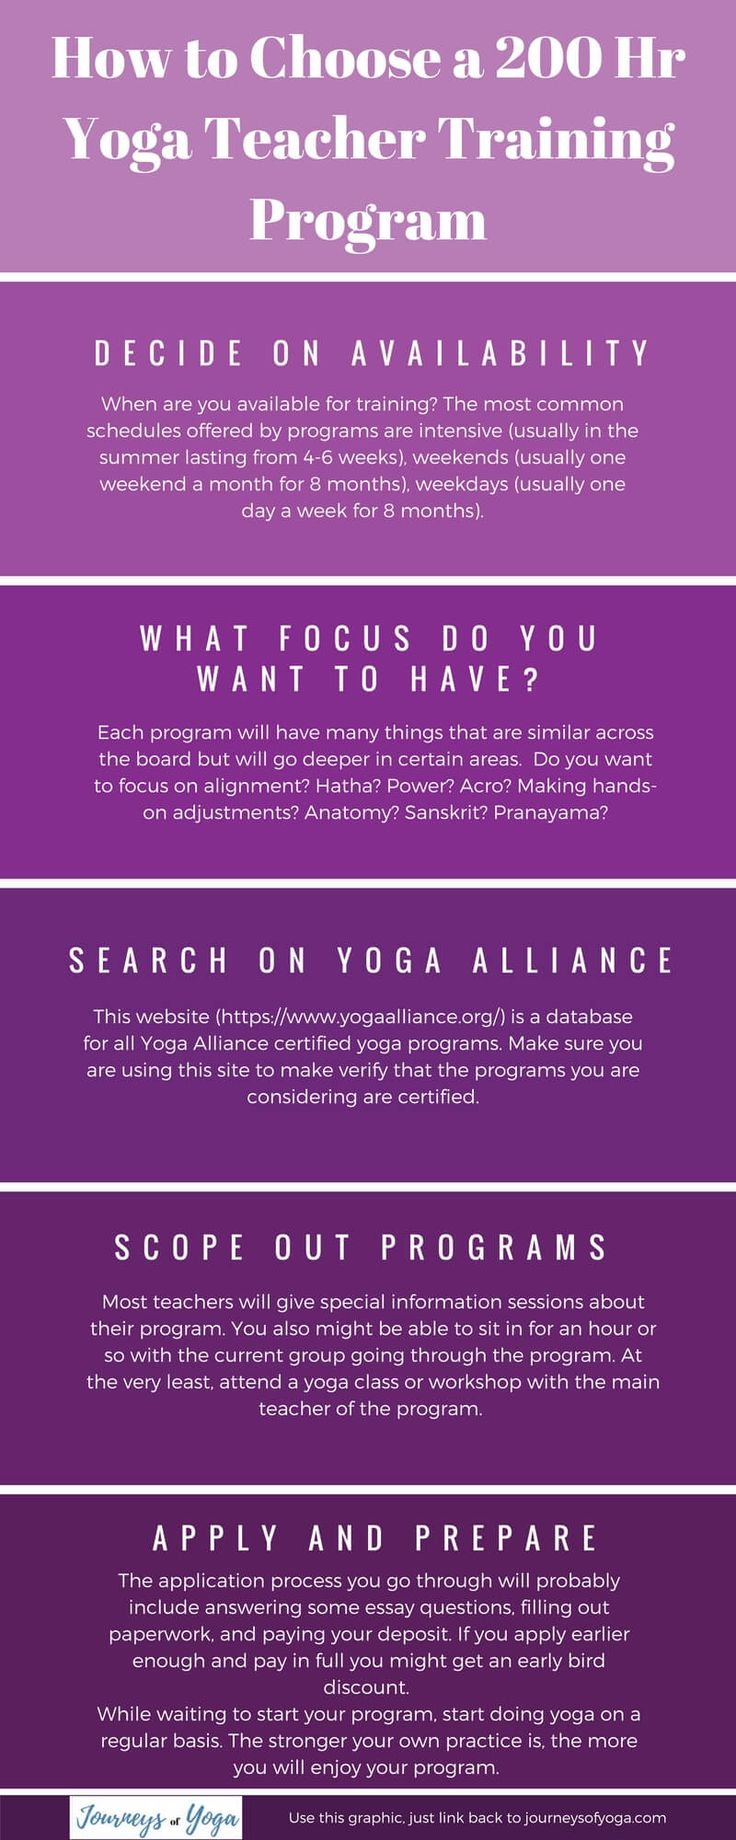 You Decided You Want To Be A Yoga Teacher? Now What?